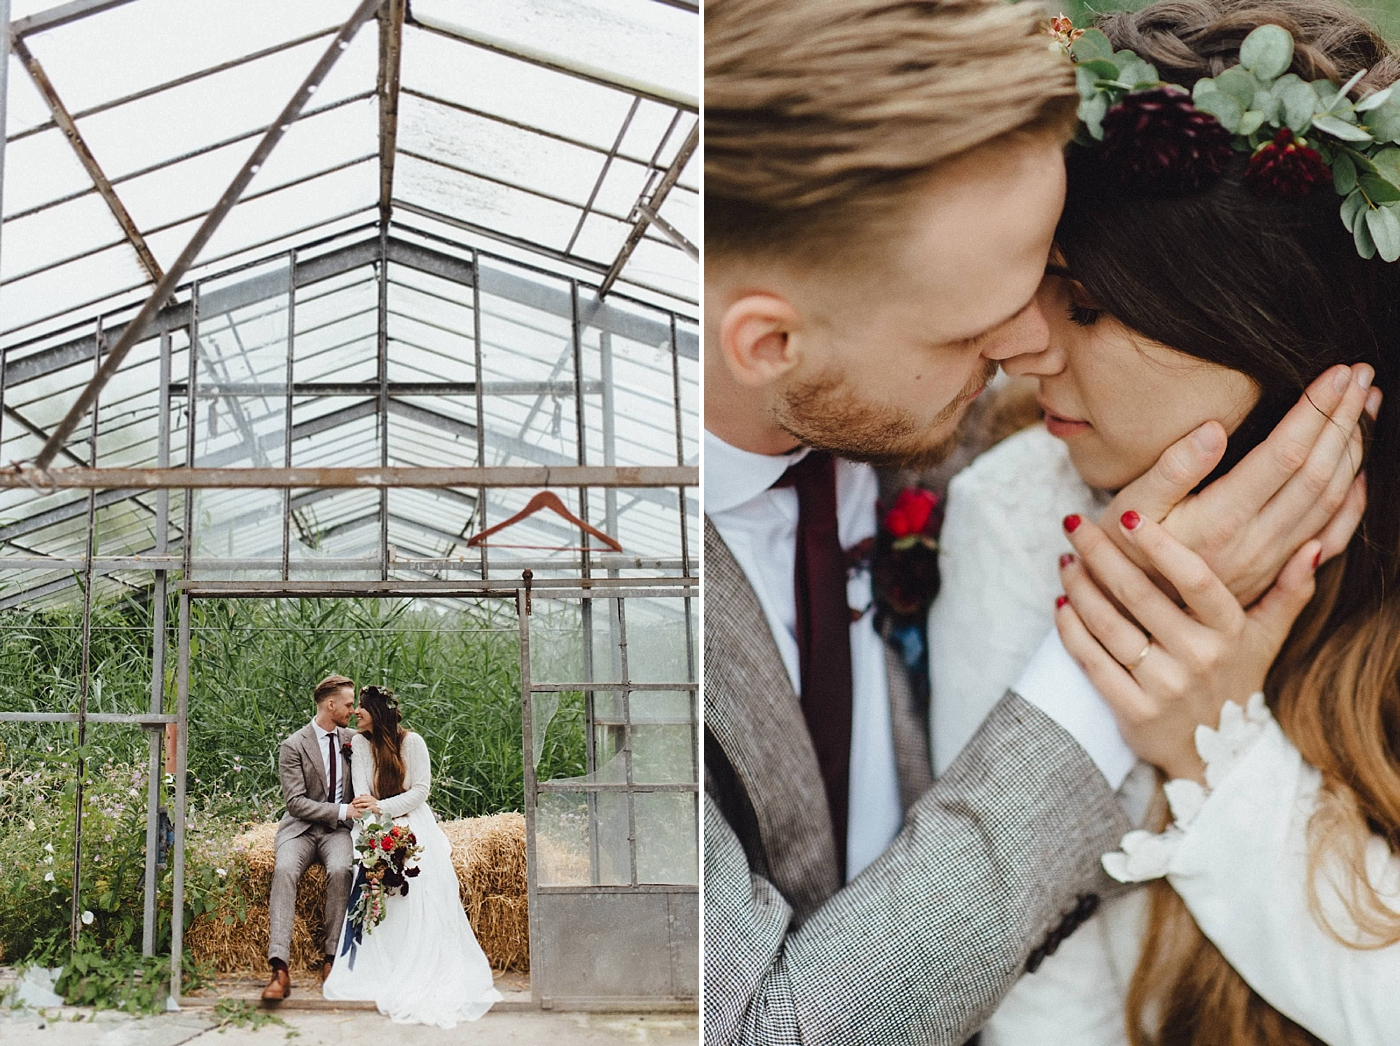 urban-elopement-wedding-171 Merve & Nils emotionales Elopement - Wedding Wesel & Schottlandurban elopement wedding 171 1